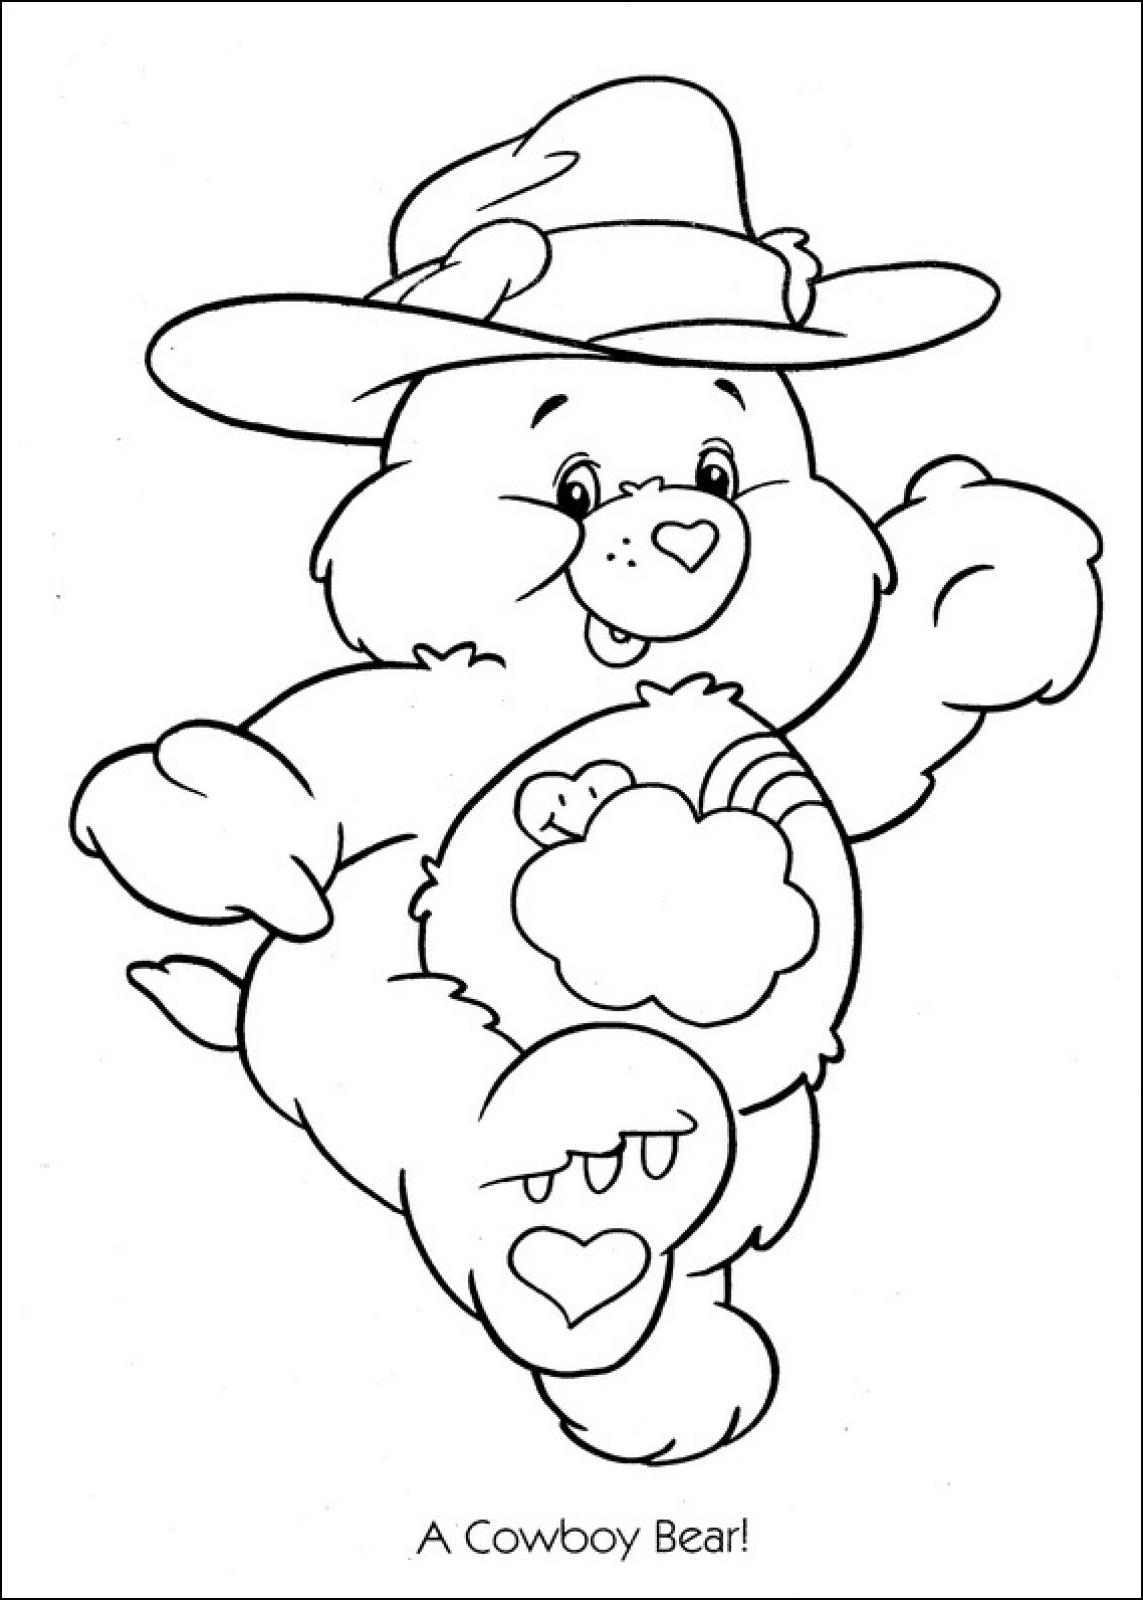 care bear coloring pages kids - photo#15